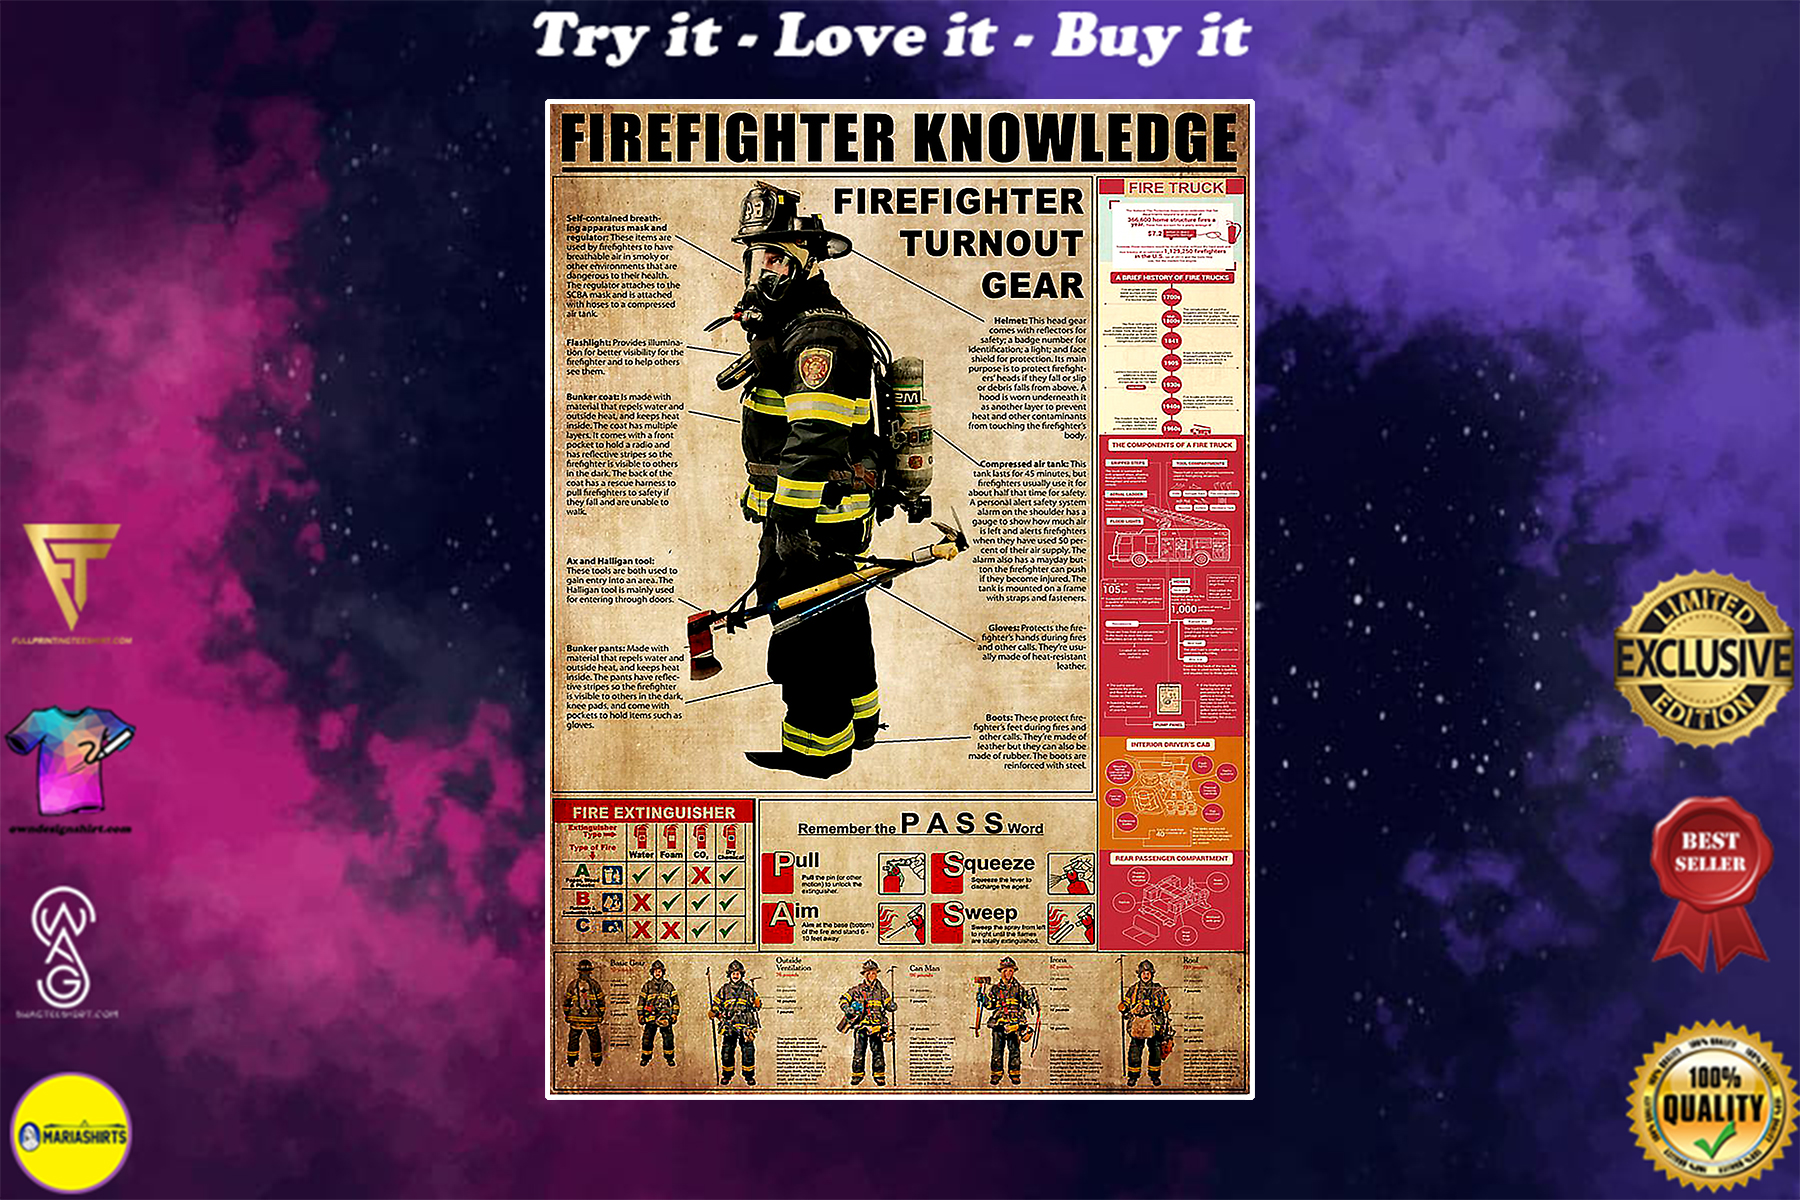 firefighter turnout gear firefighter knowledge vintage poster